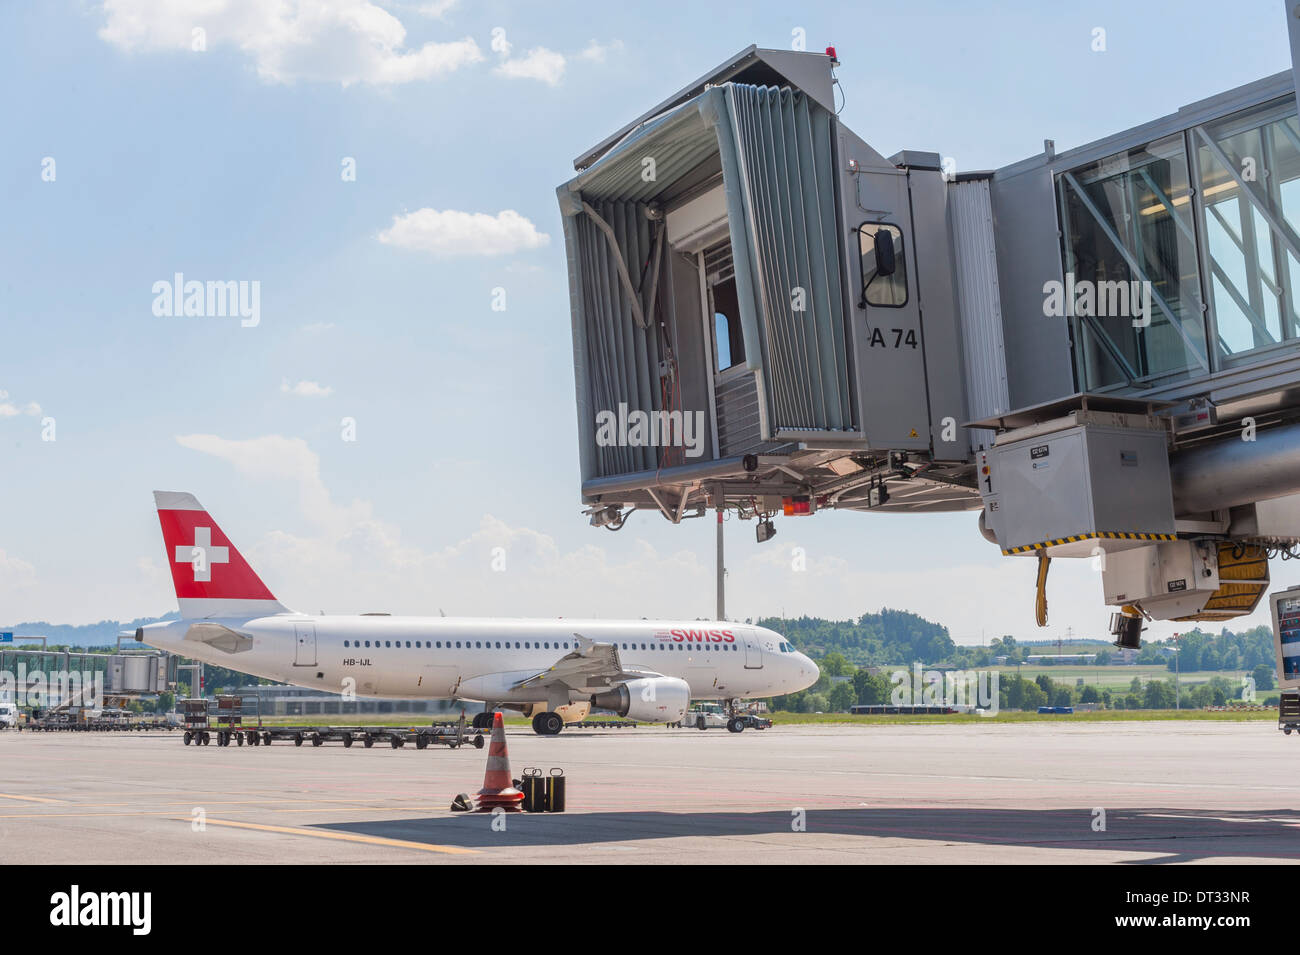 An Airbus aircraft of Swiss International Airlines is pulled to the runway at Zurich international airport - Stock Image